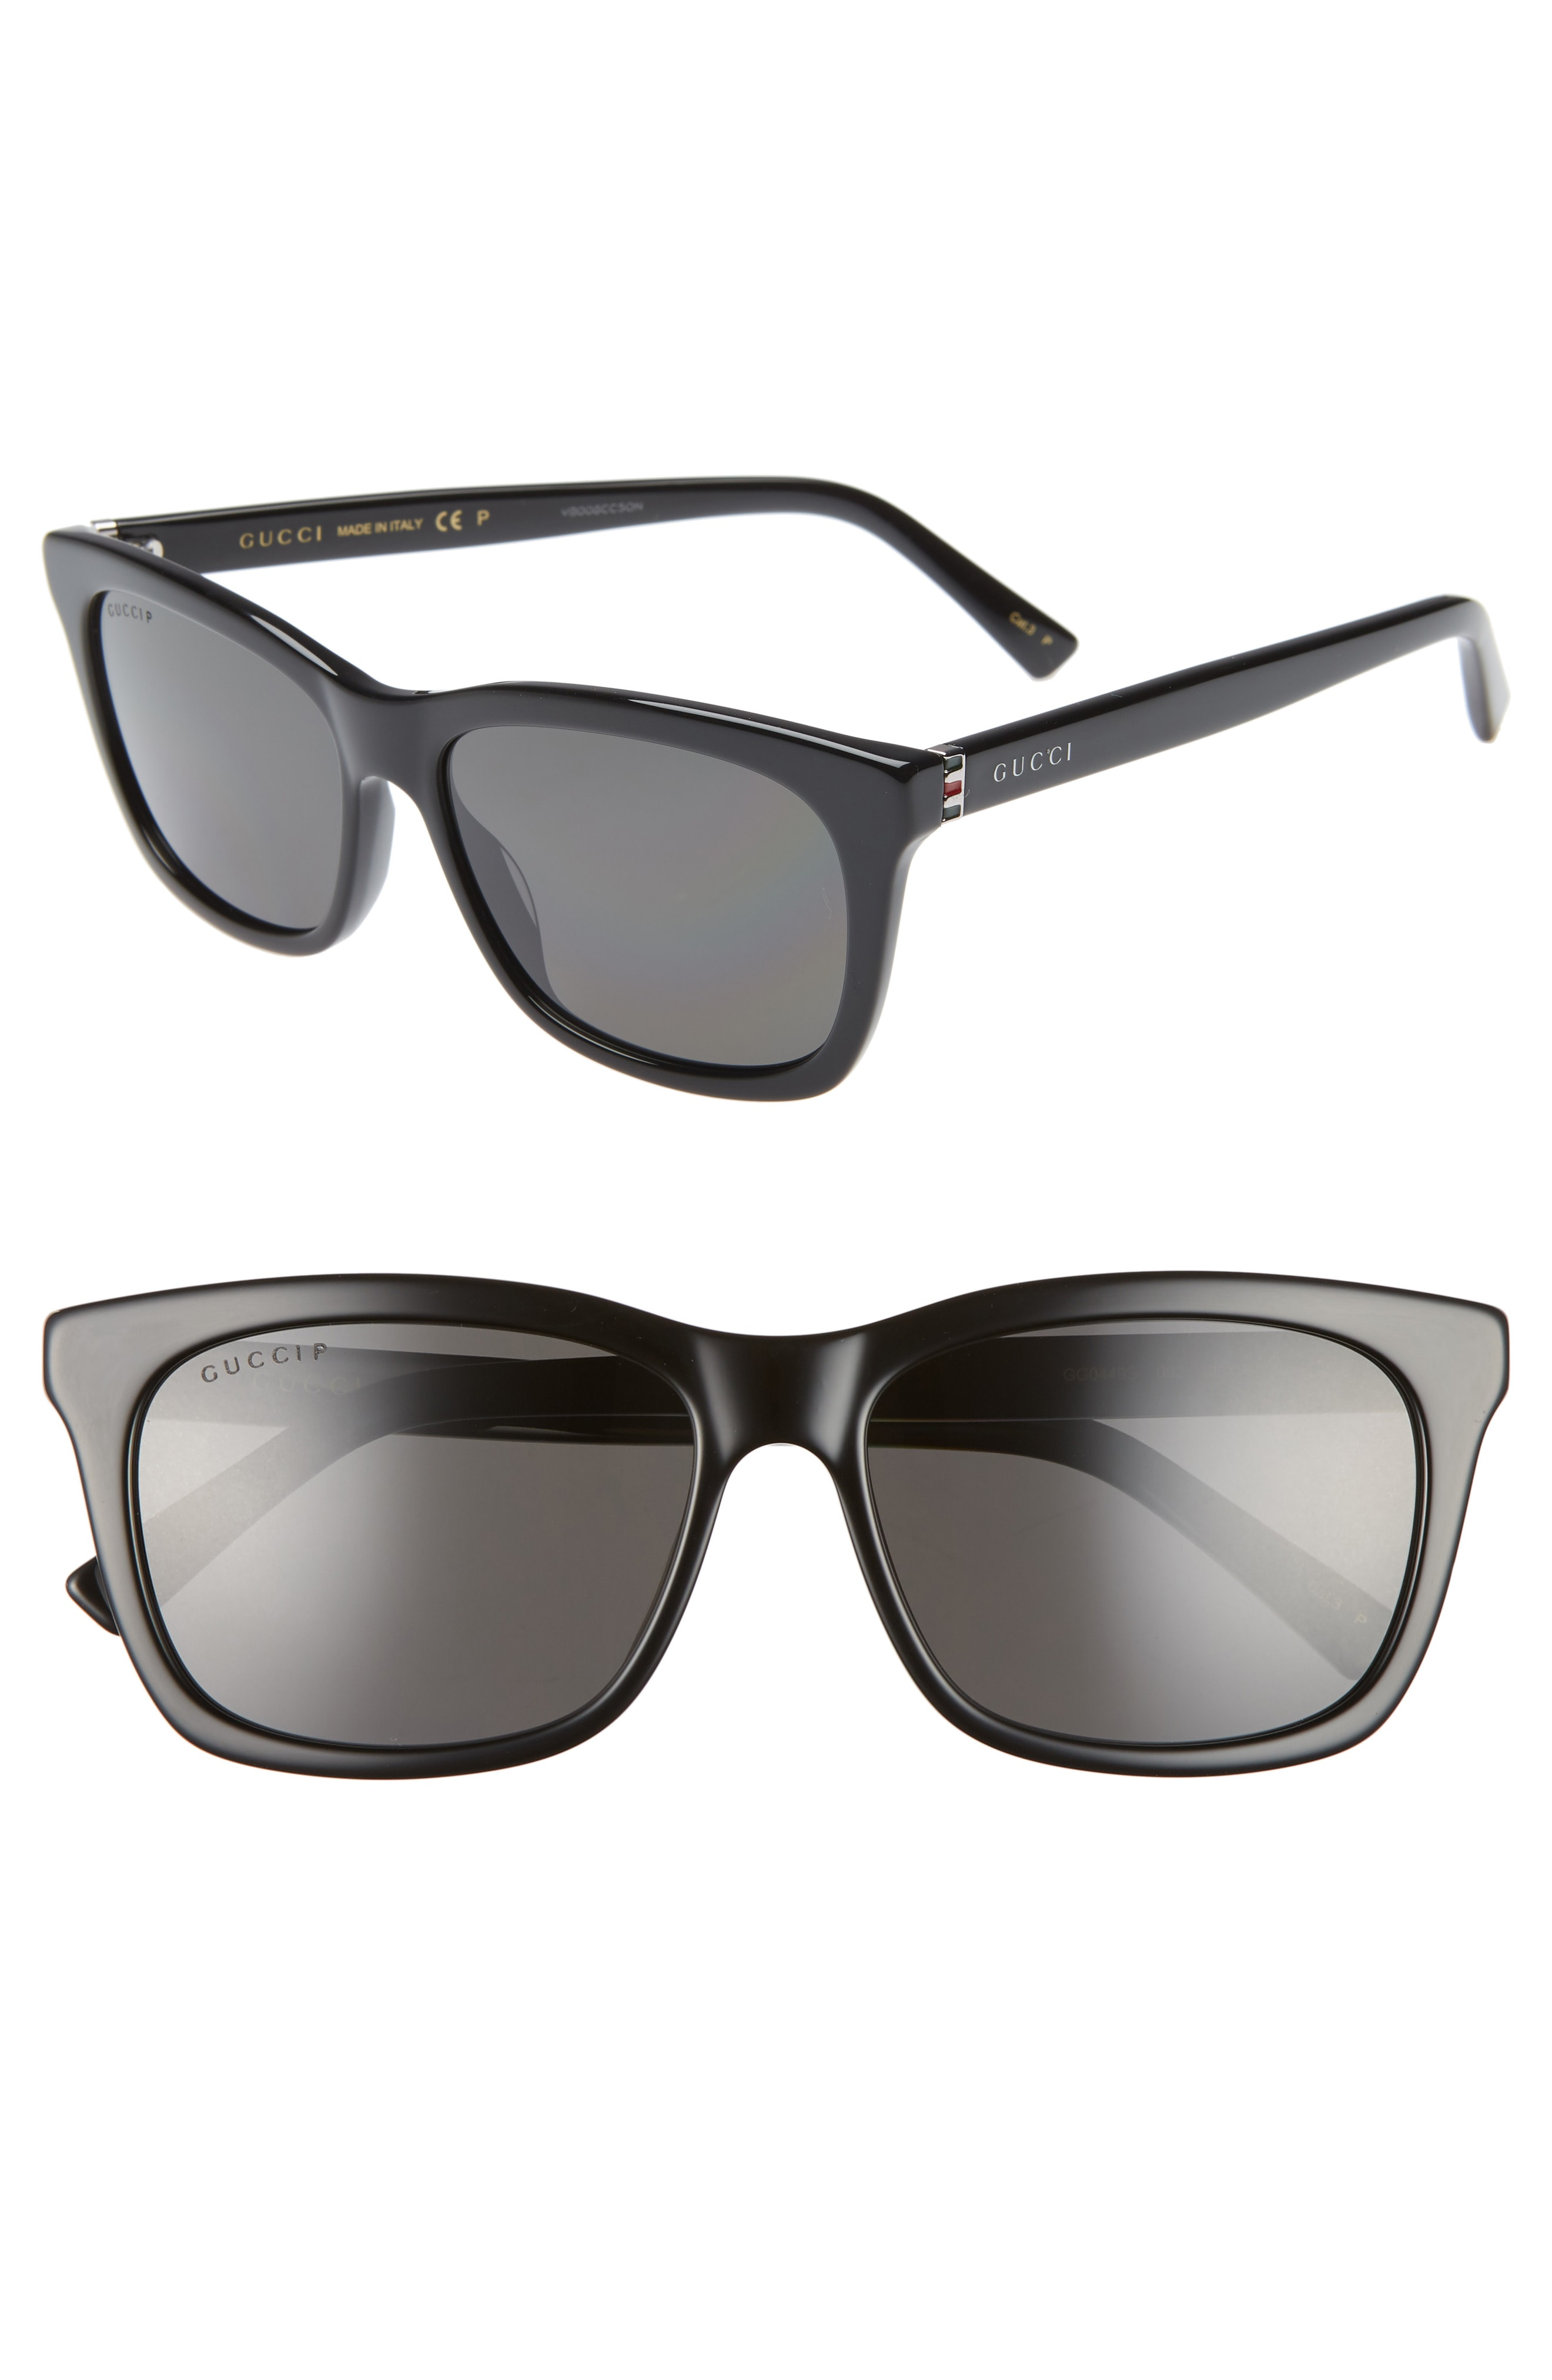 0e9522c119b1 Men's Gucci 56Mm Polarized Square Sunglasses – Black/ Grey | The ...